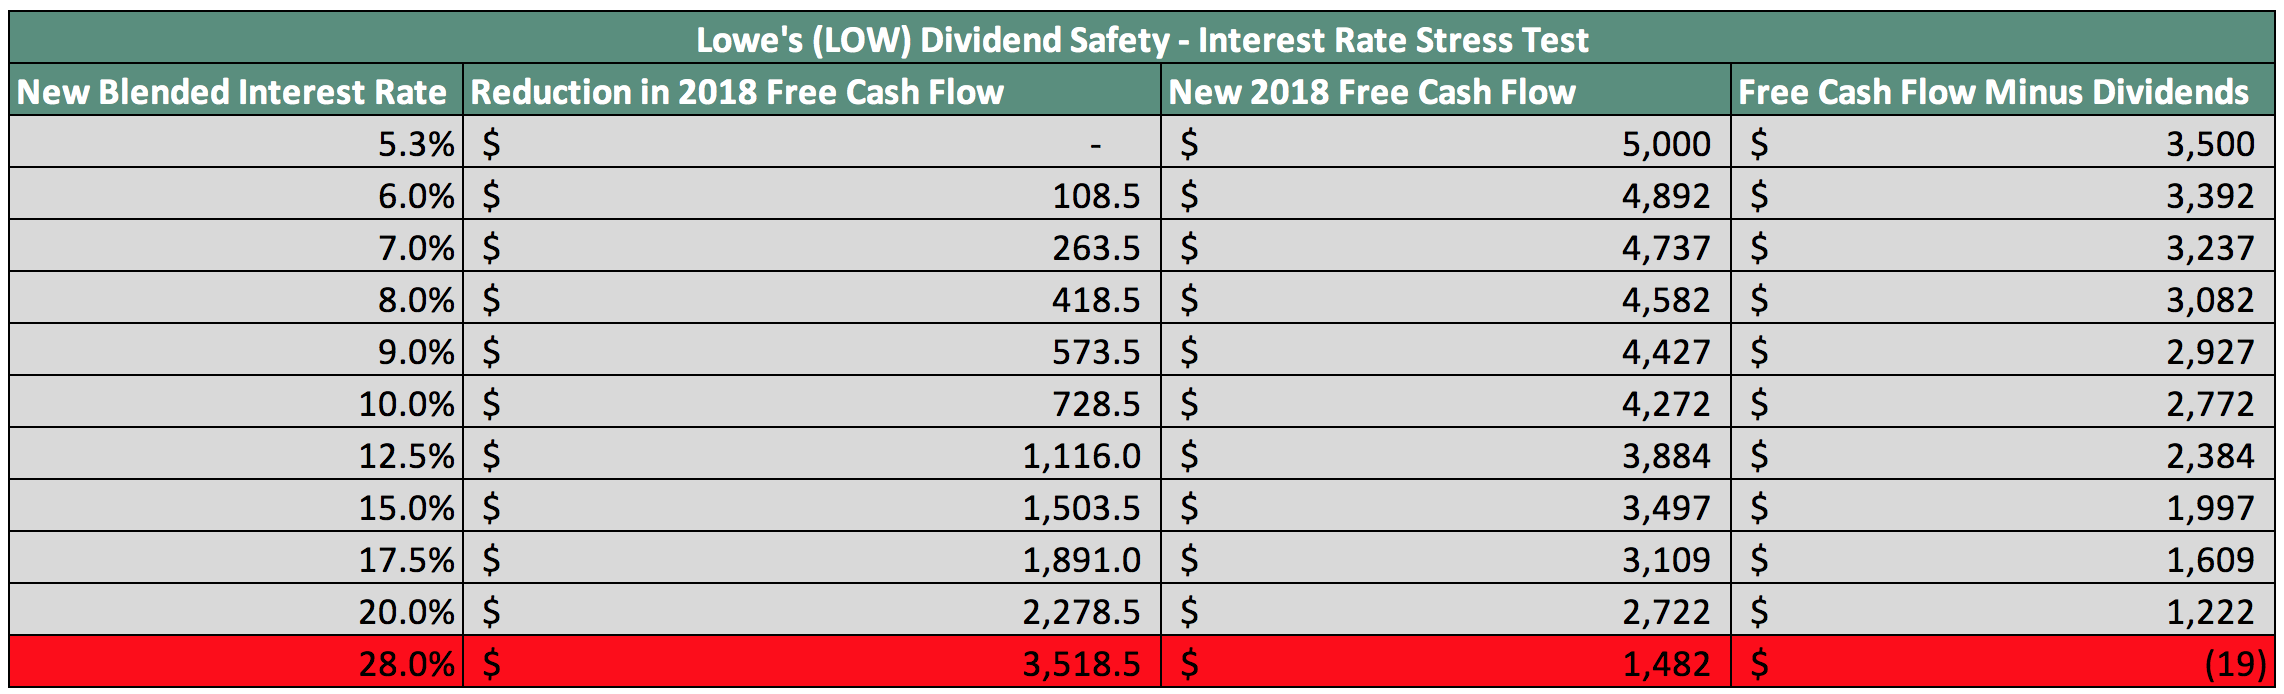 How Safe Is Lowe's Dividend? - Lowe's Companies, Inc  (NYSE